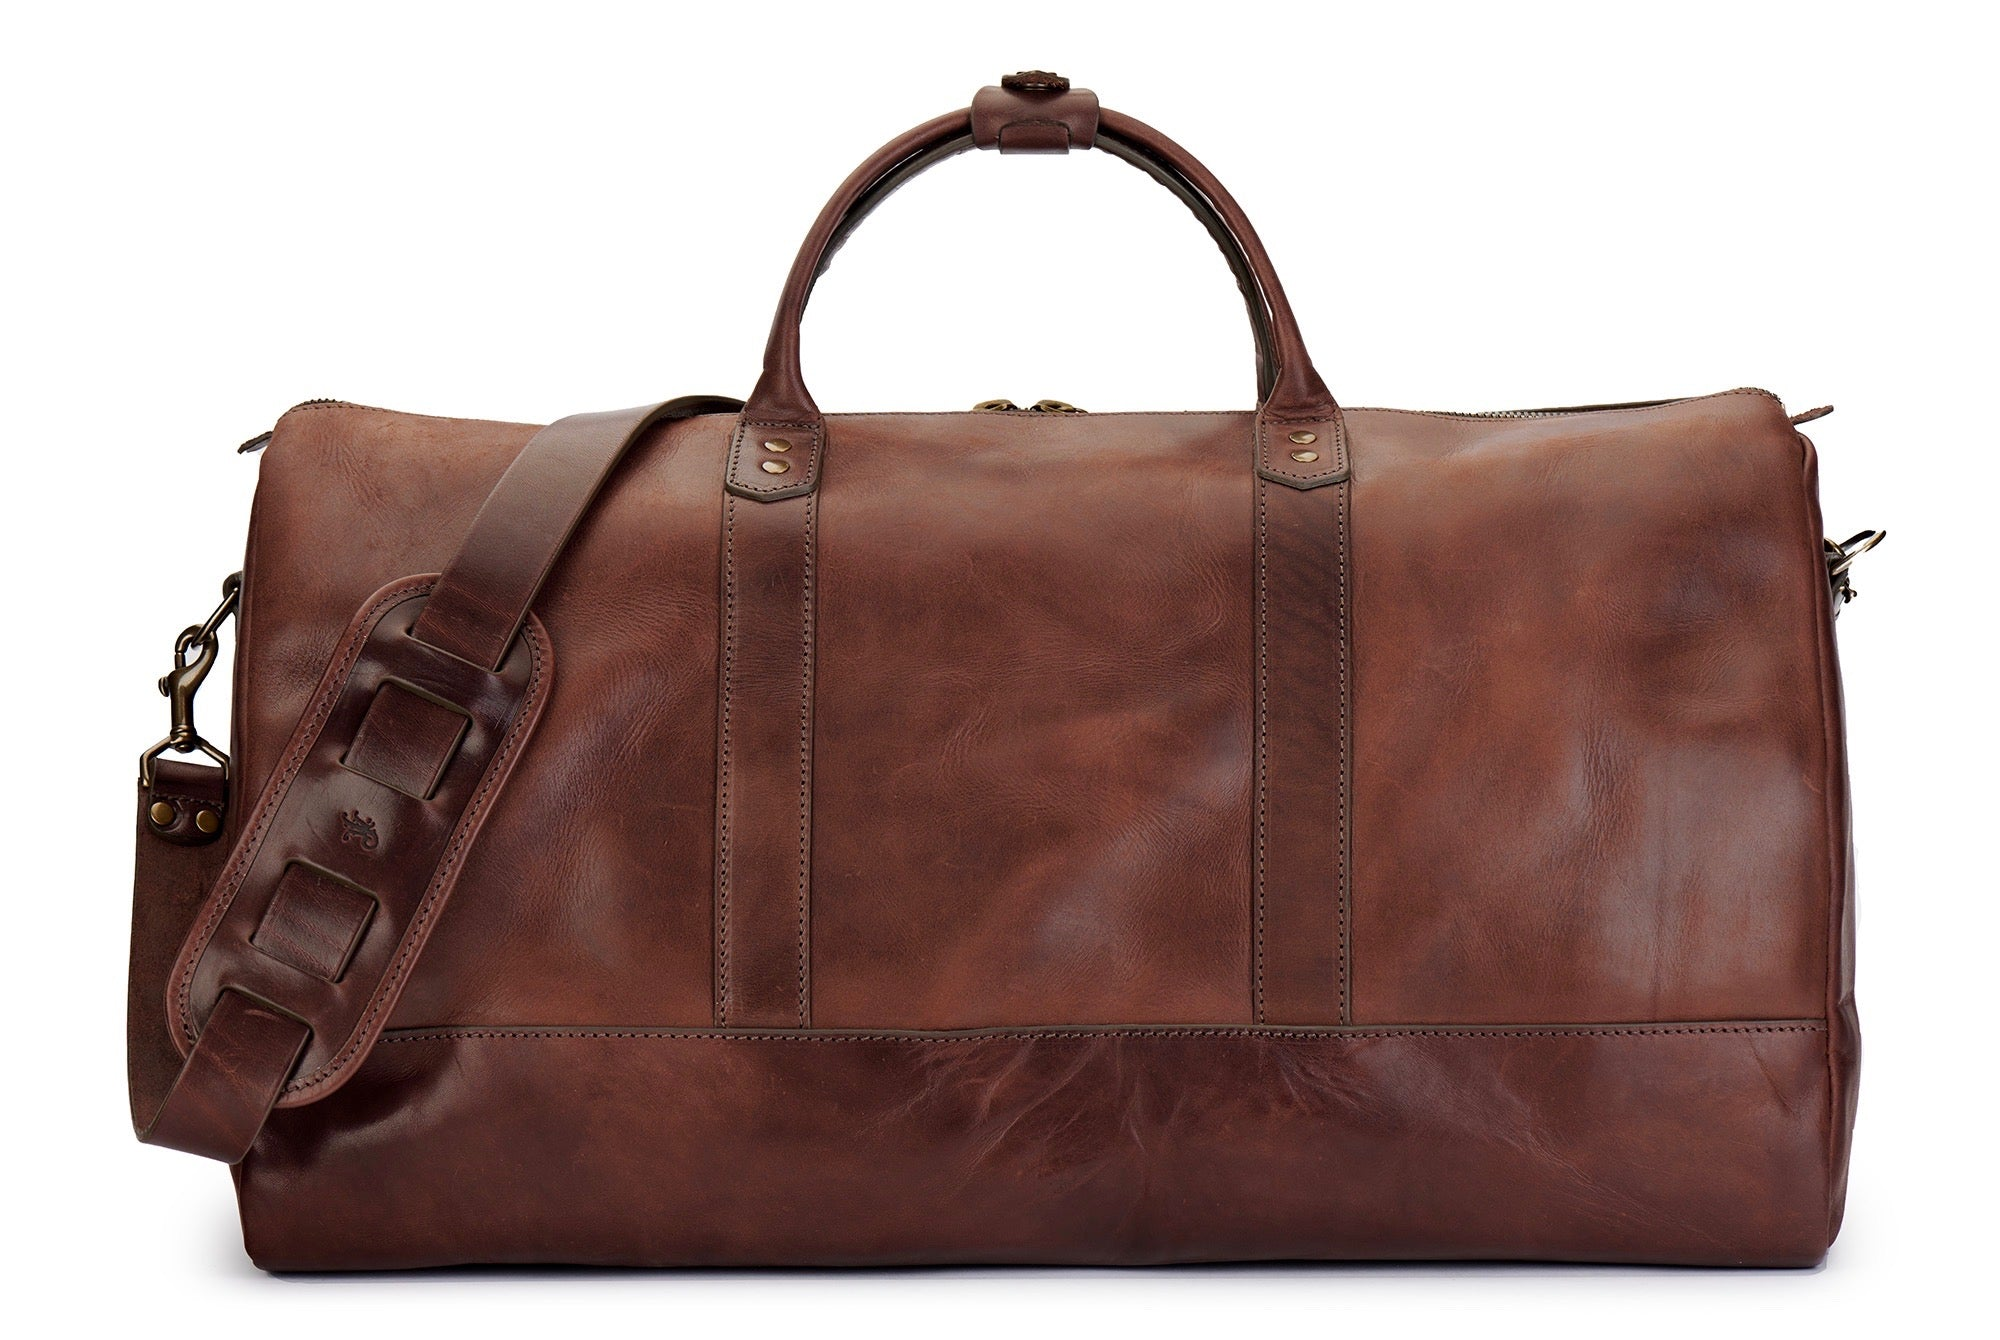 Leather Duffel Bag Vegetable Tanned Leather WWII Duffel Full Grain Leather